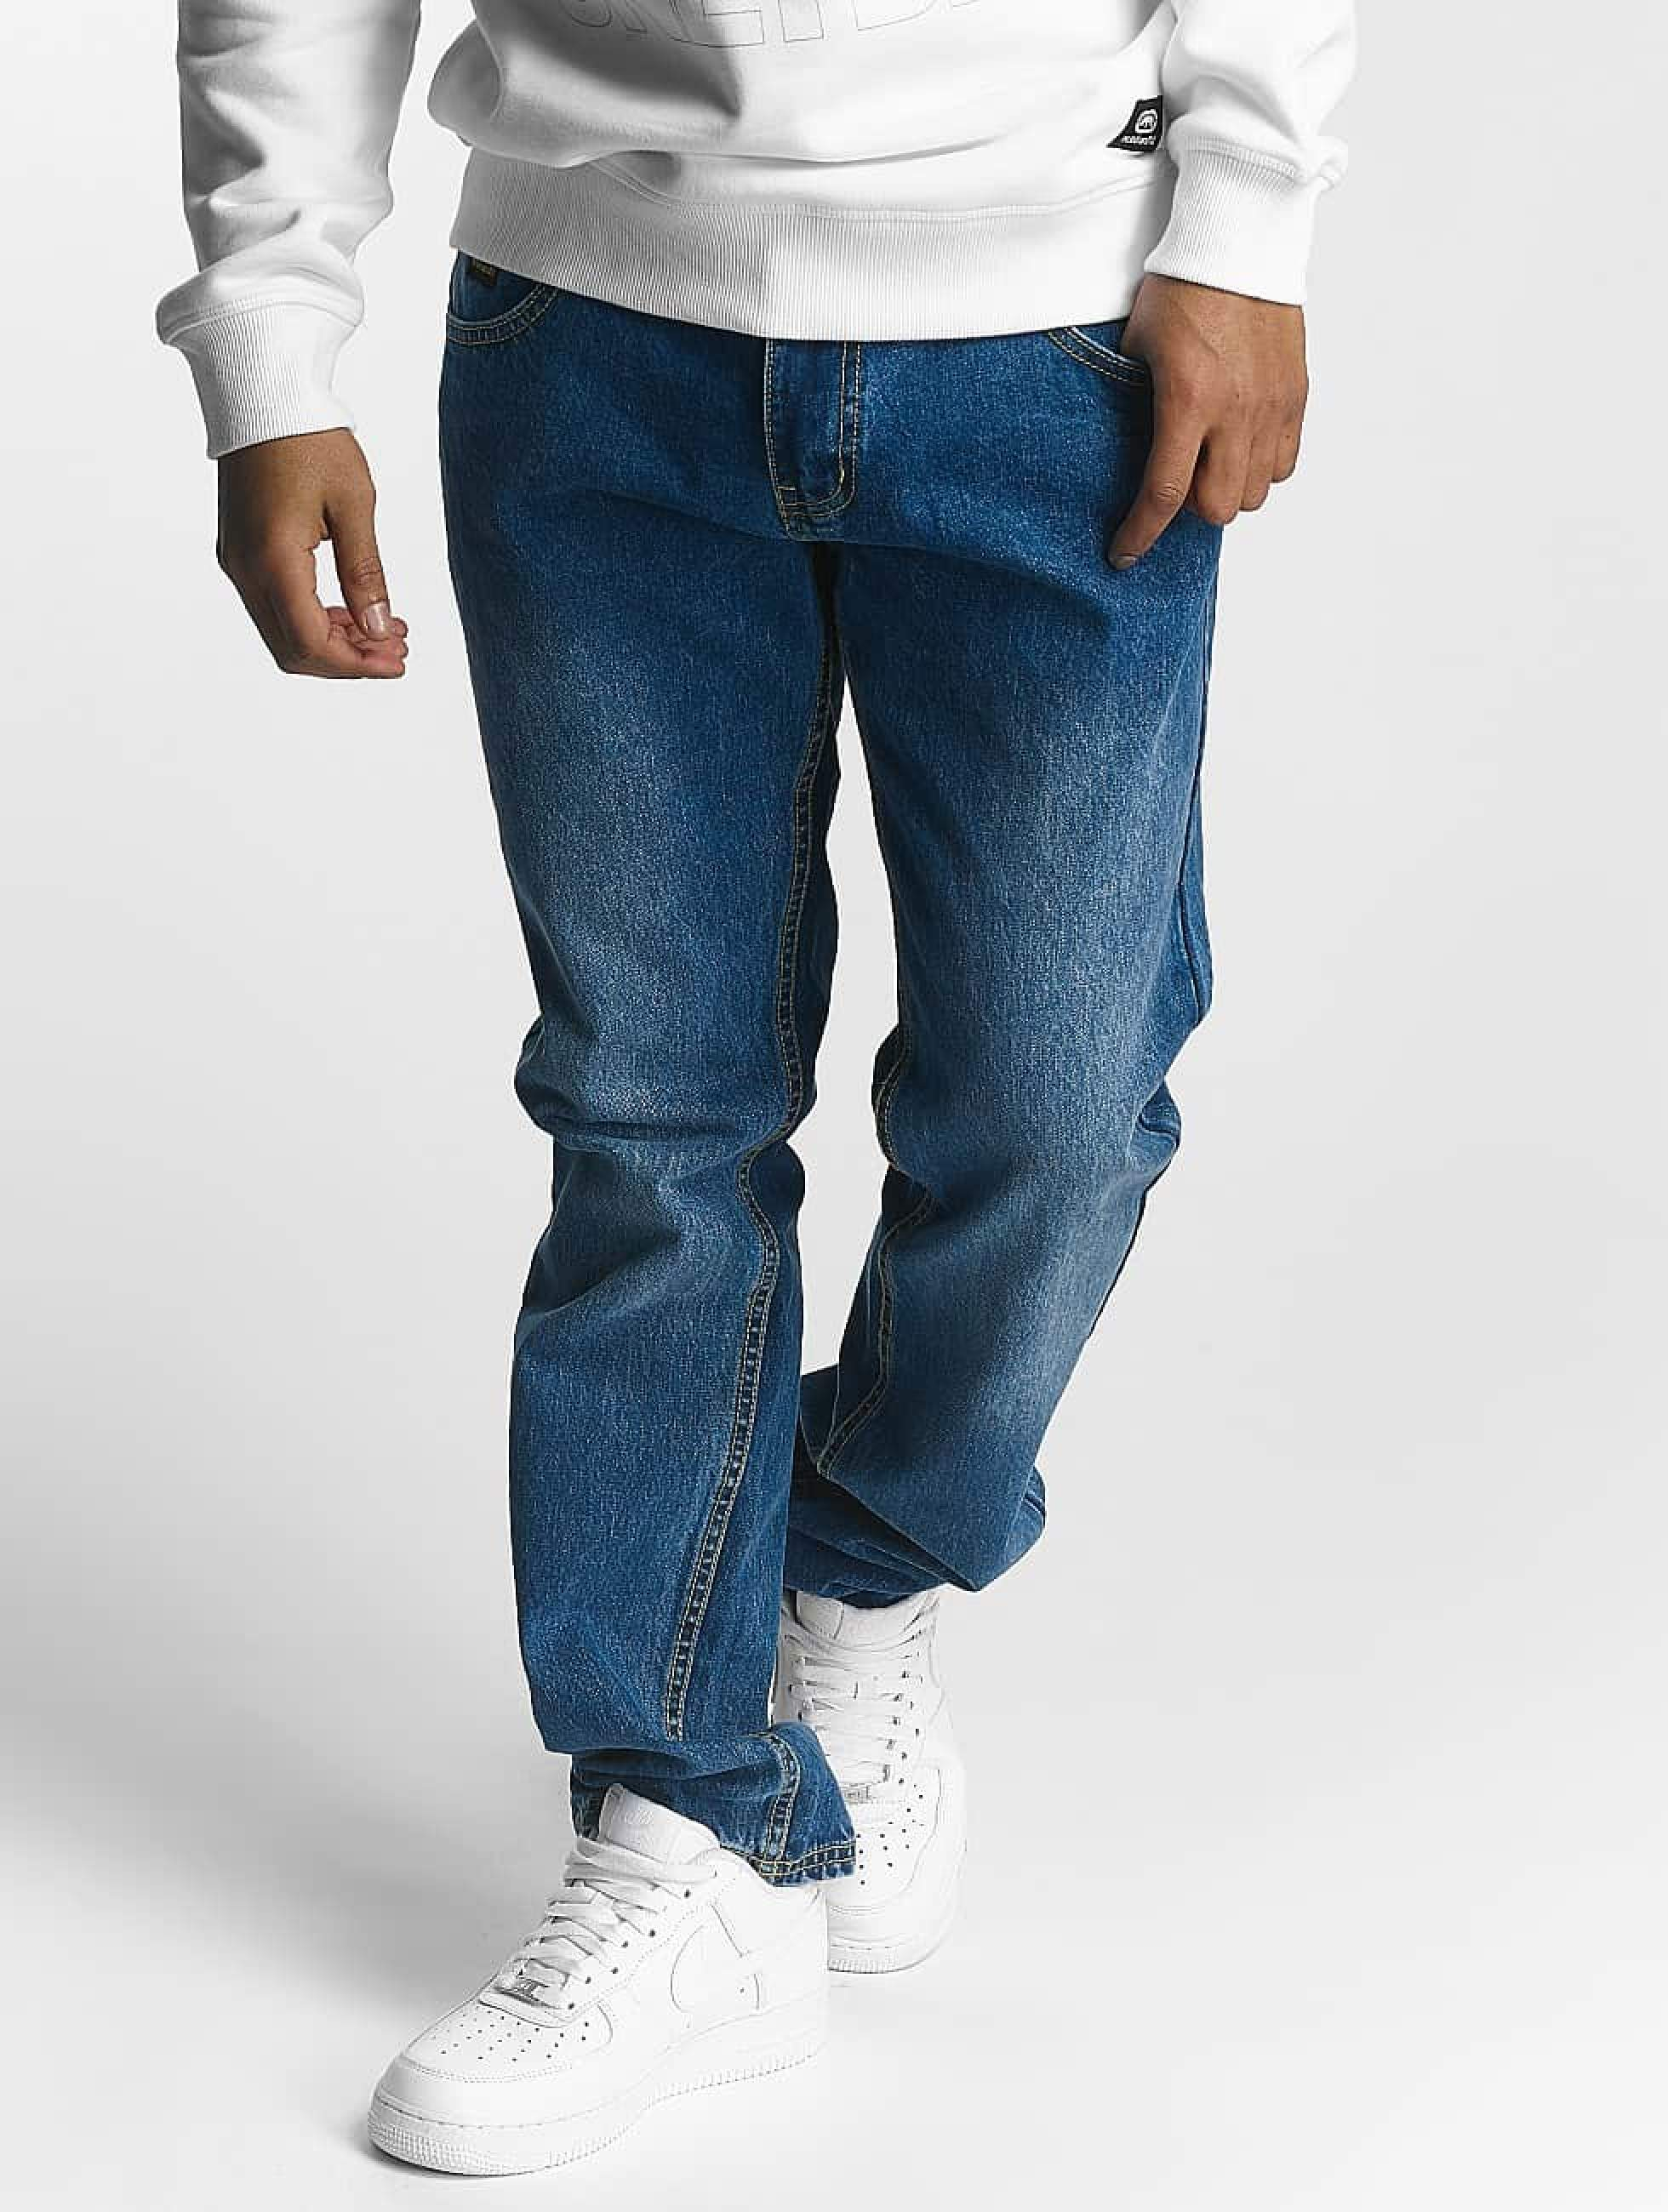 Ecko Unltd. / Straight Fit Jeans Gordon St Straight Fit in blue W 38 L 34